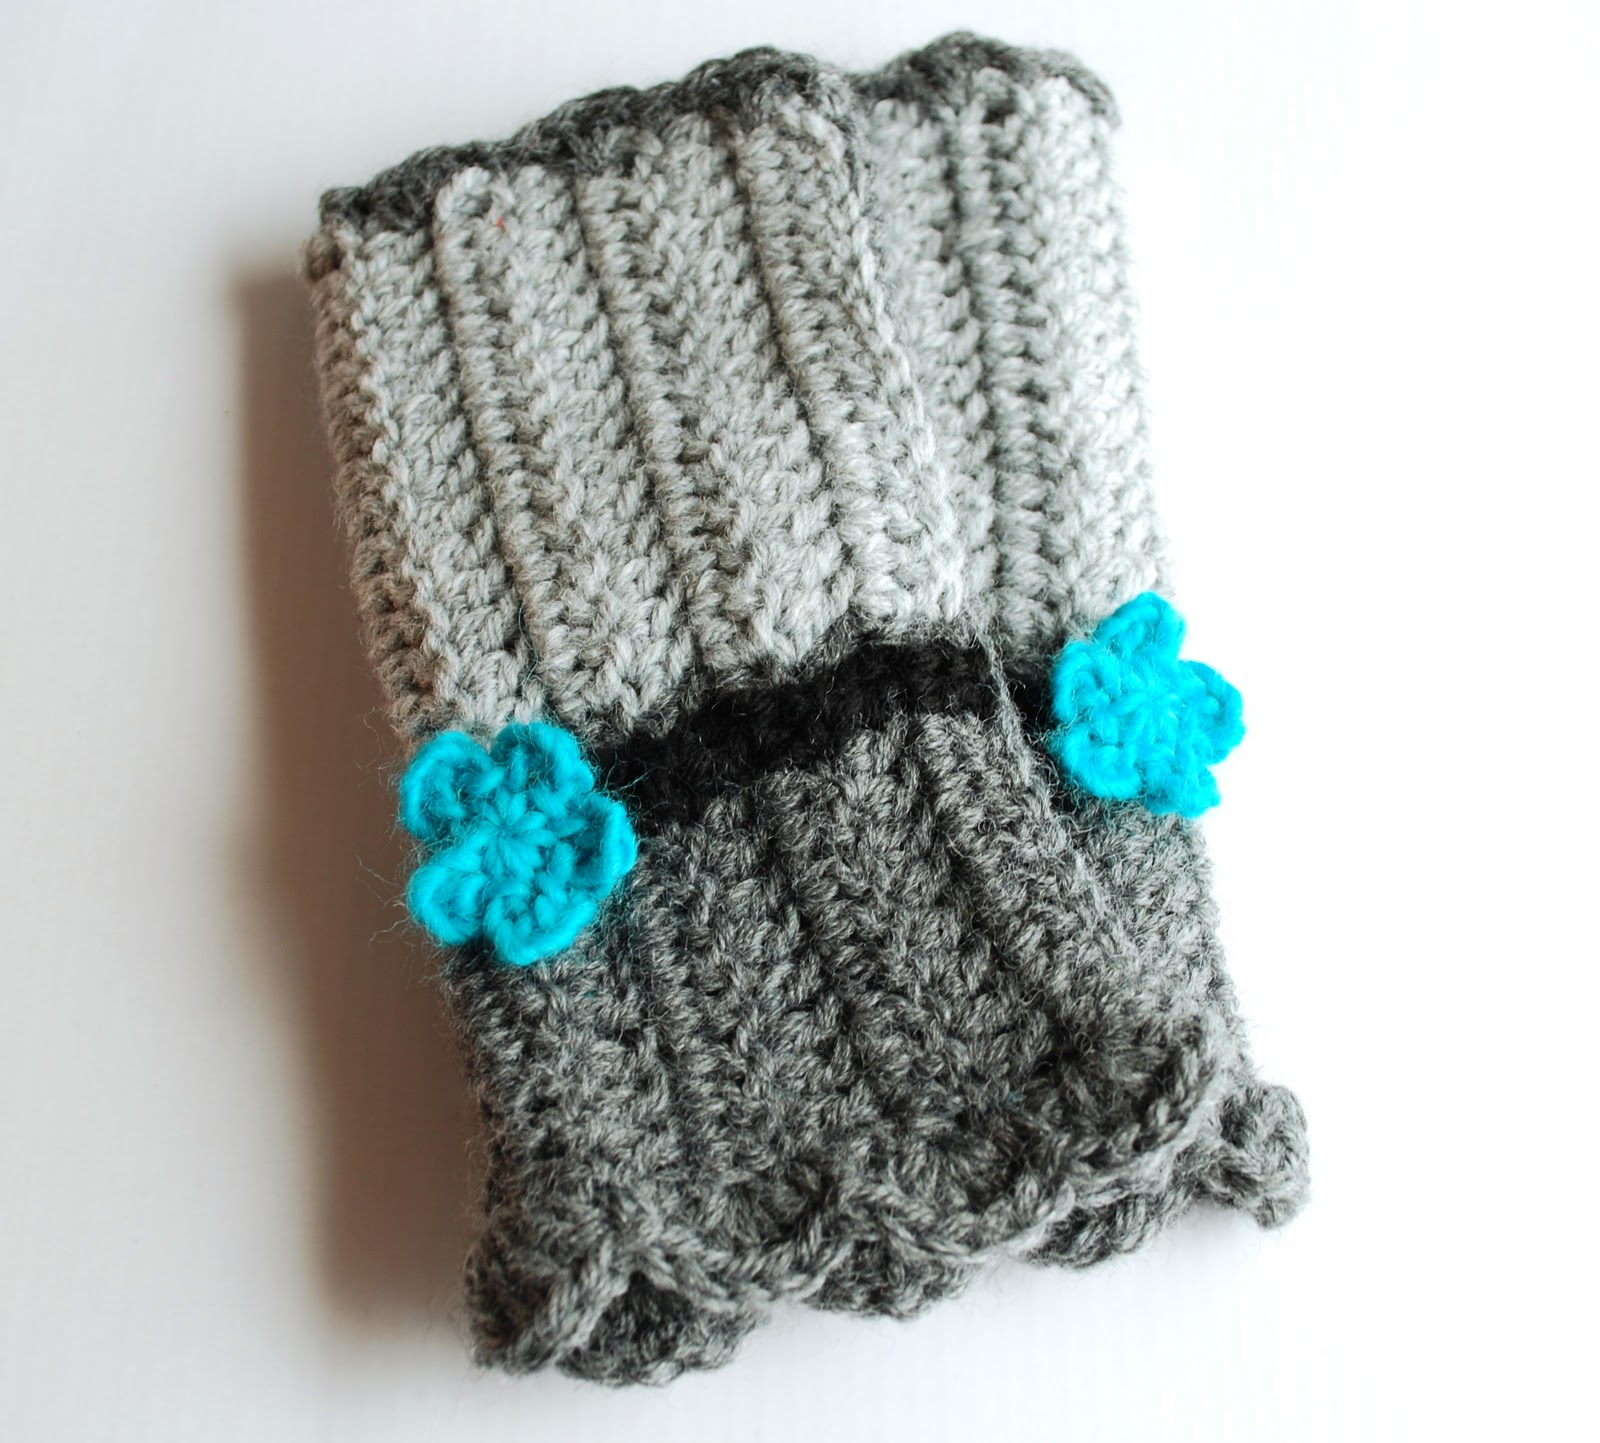 Crochet Patterns Arm Warmers : really nervous about posting this for fear that it wont make ...